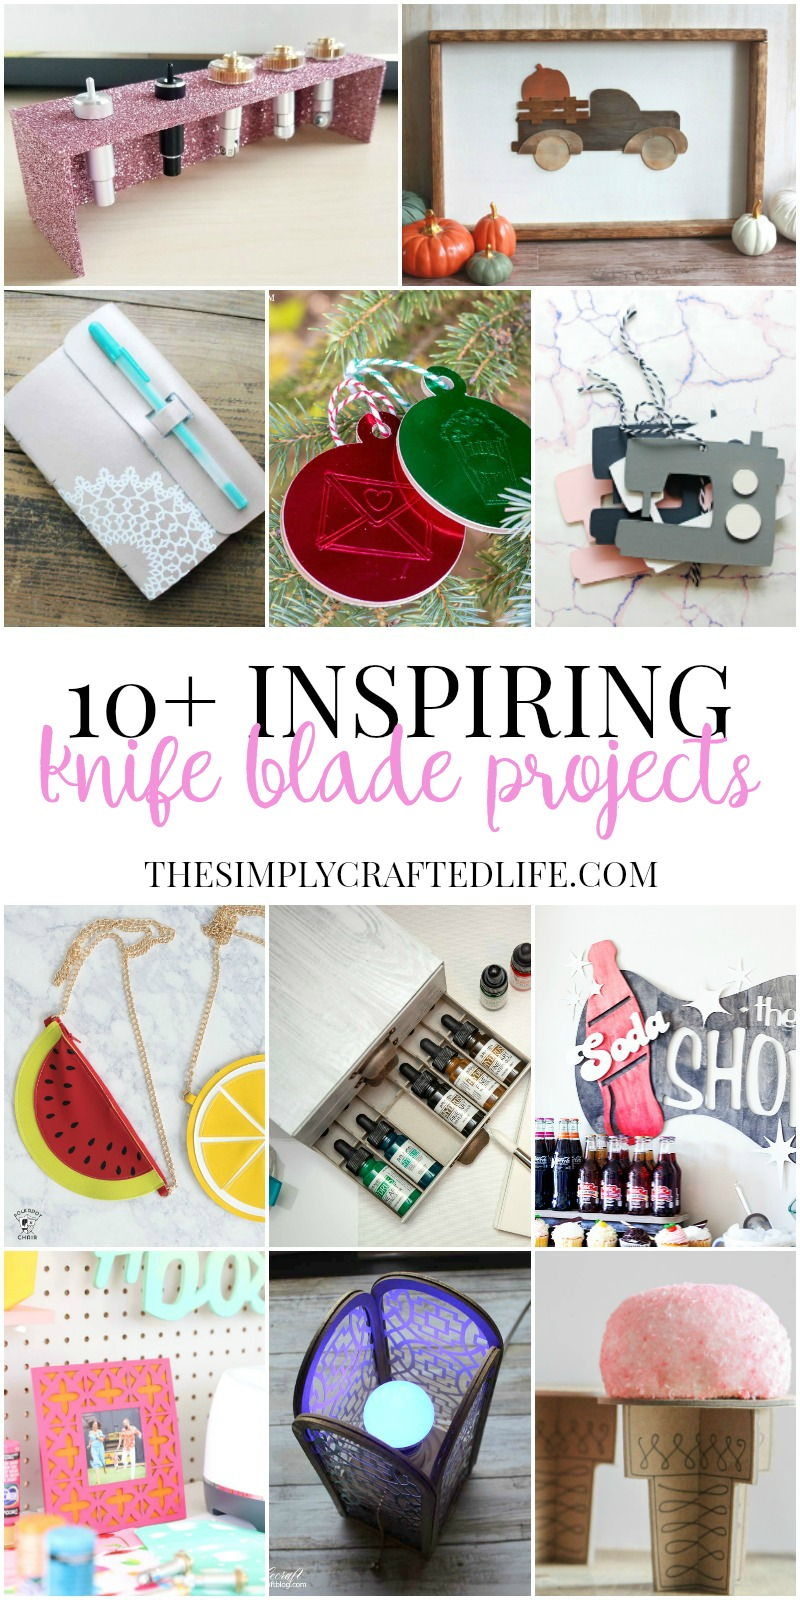 The Best Knife Blade Projects